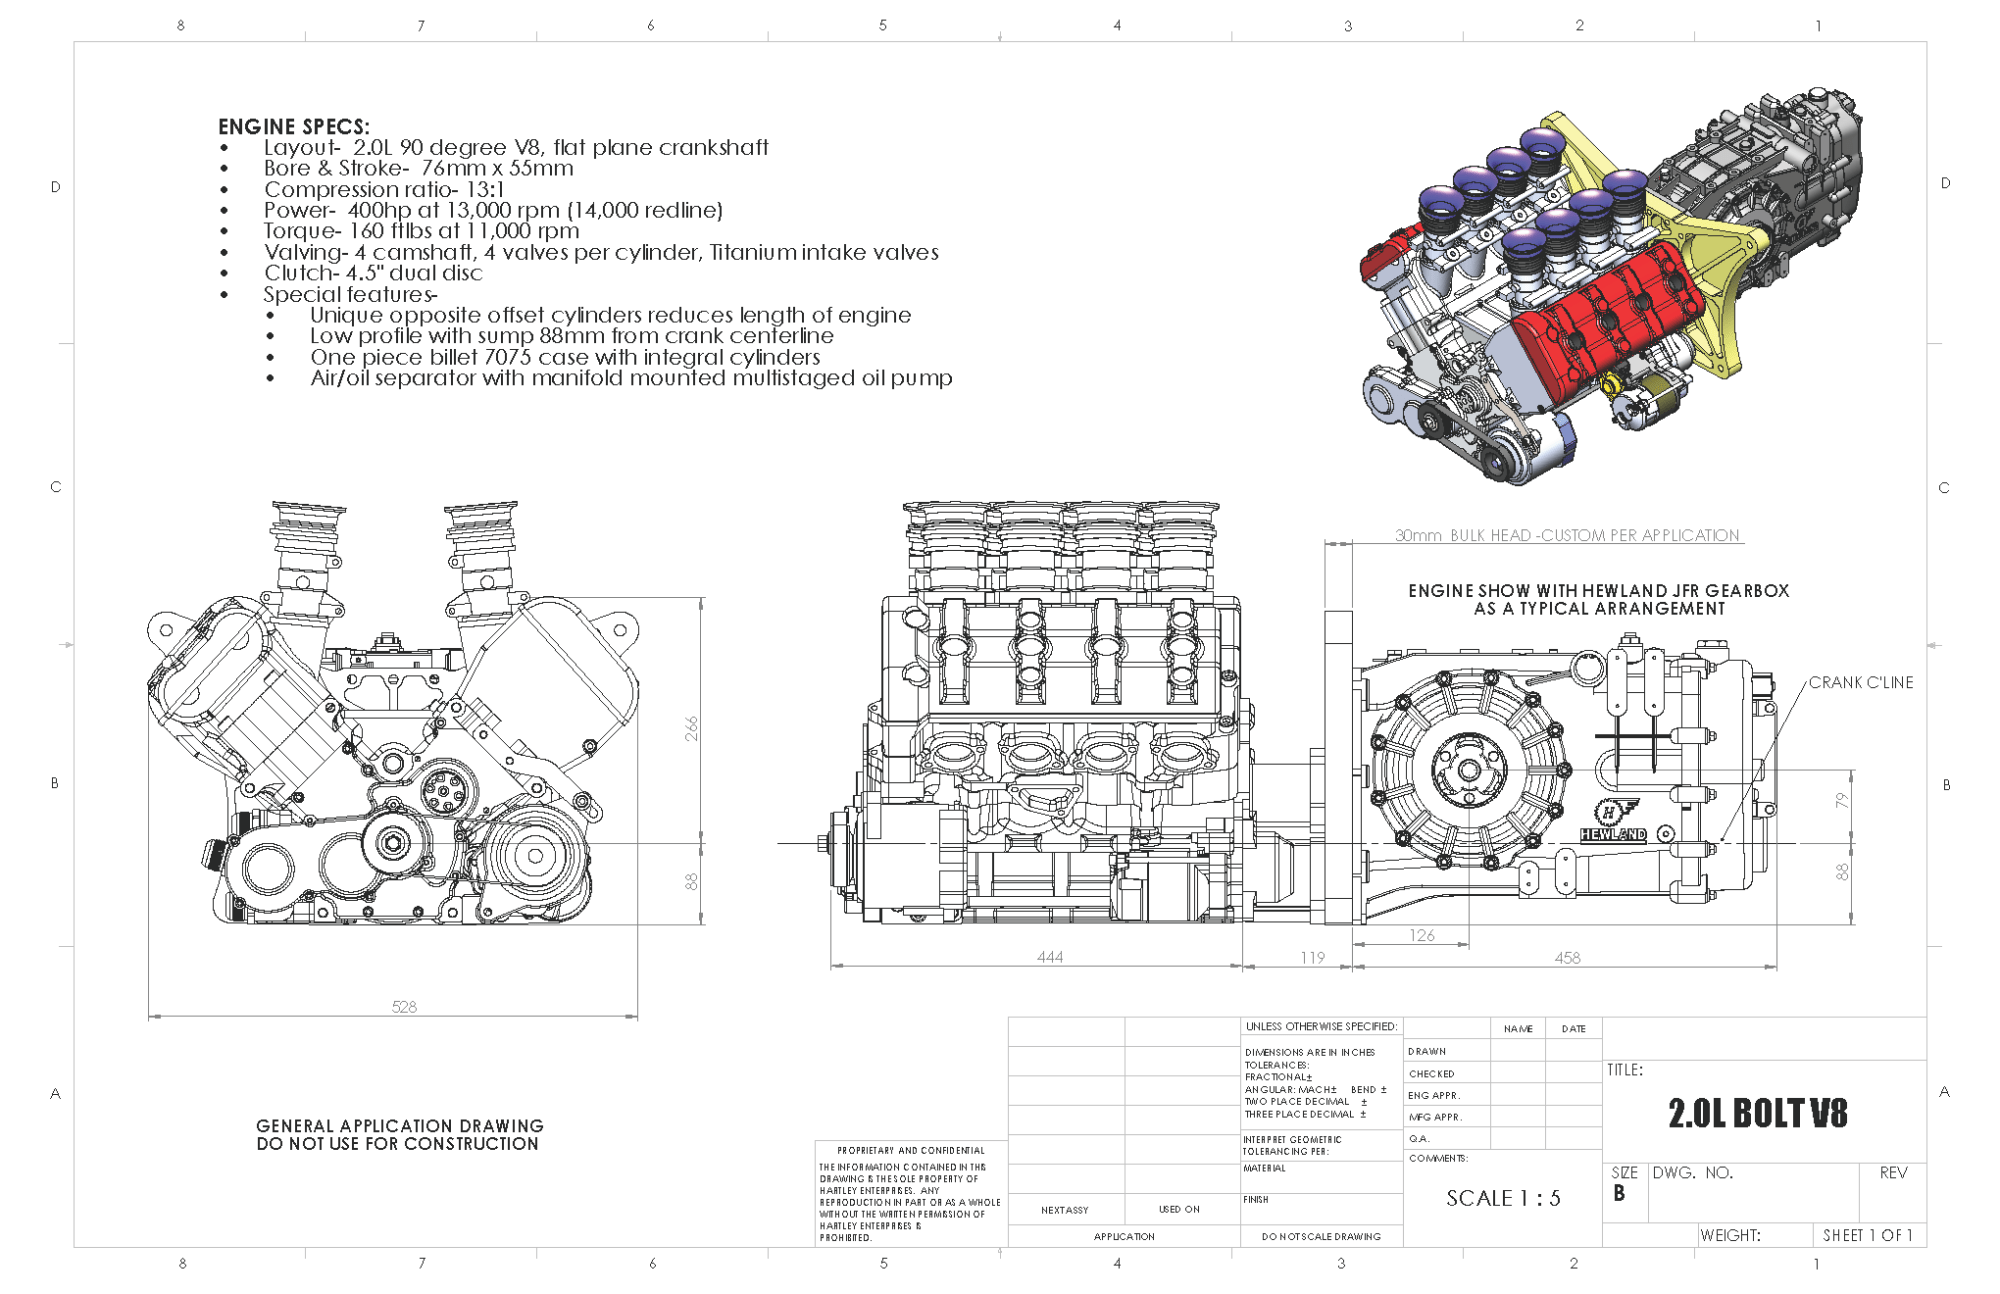 hight resolution of design sold in 2016 to jfc racing in auburn washington you can read more details about the jfc v8 here